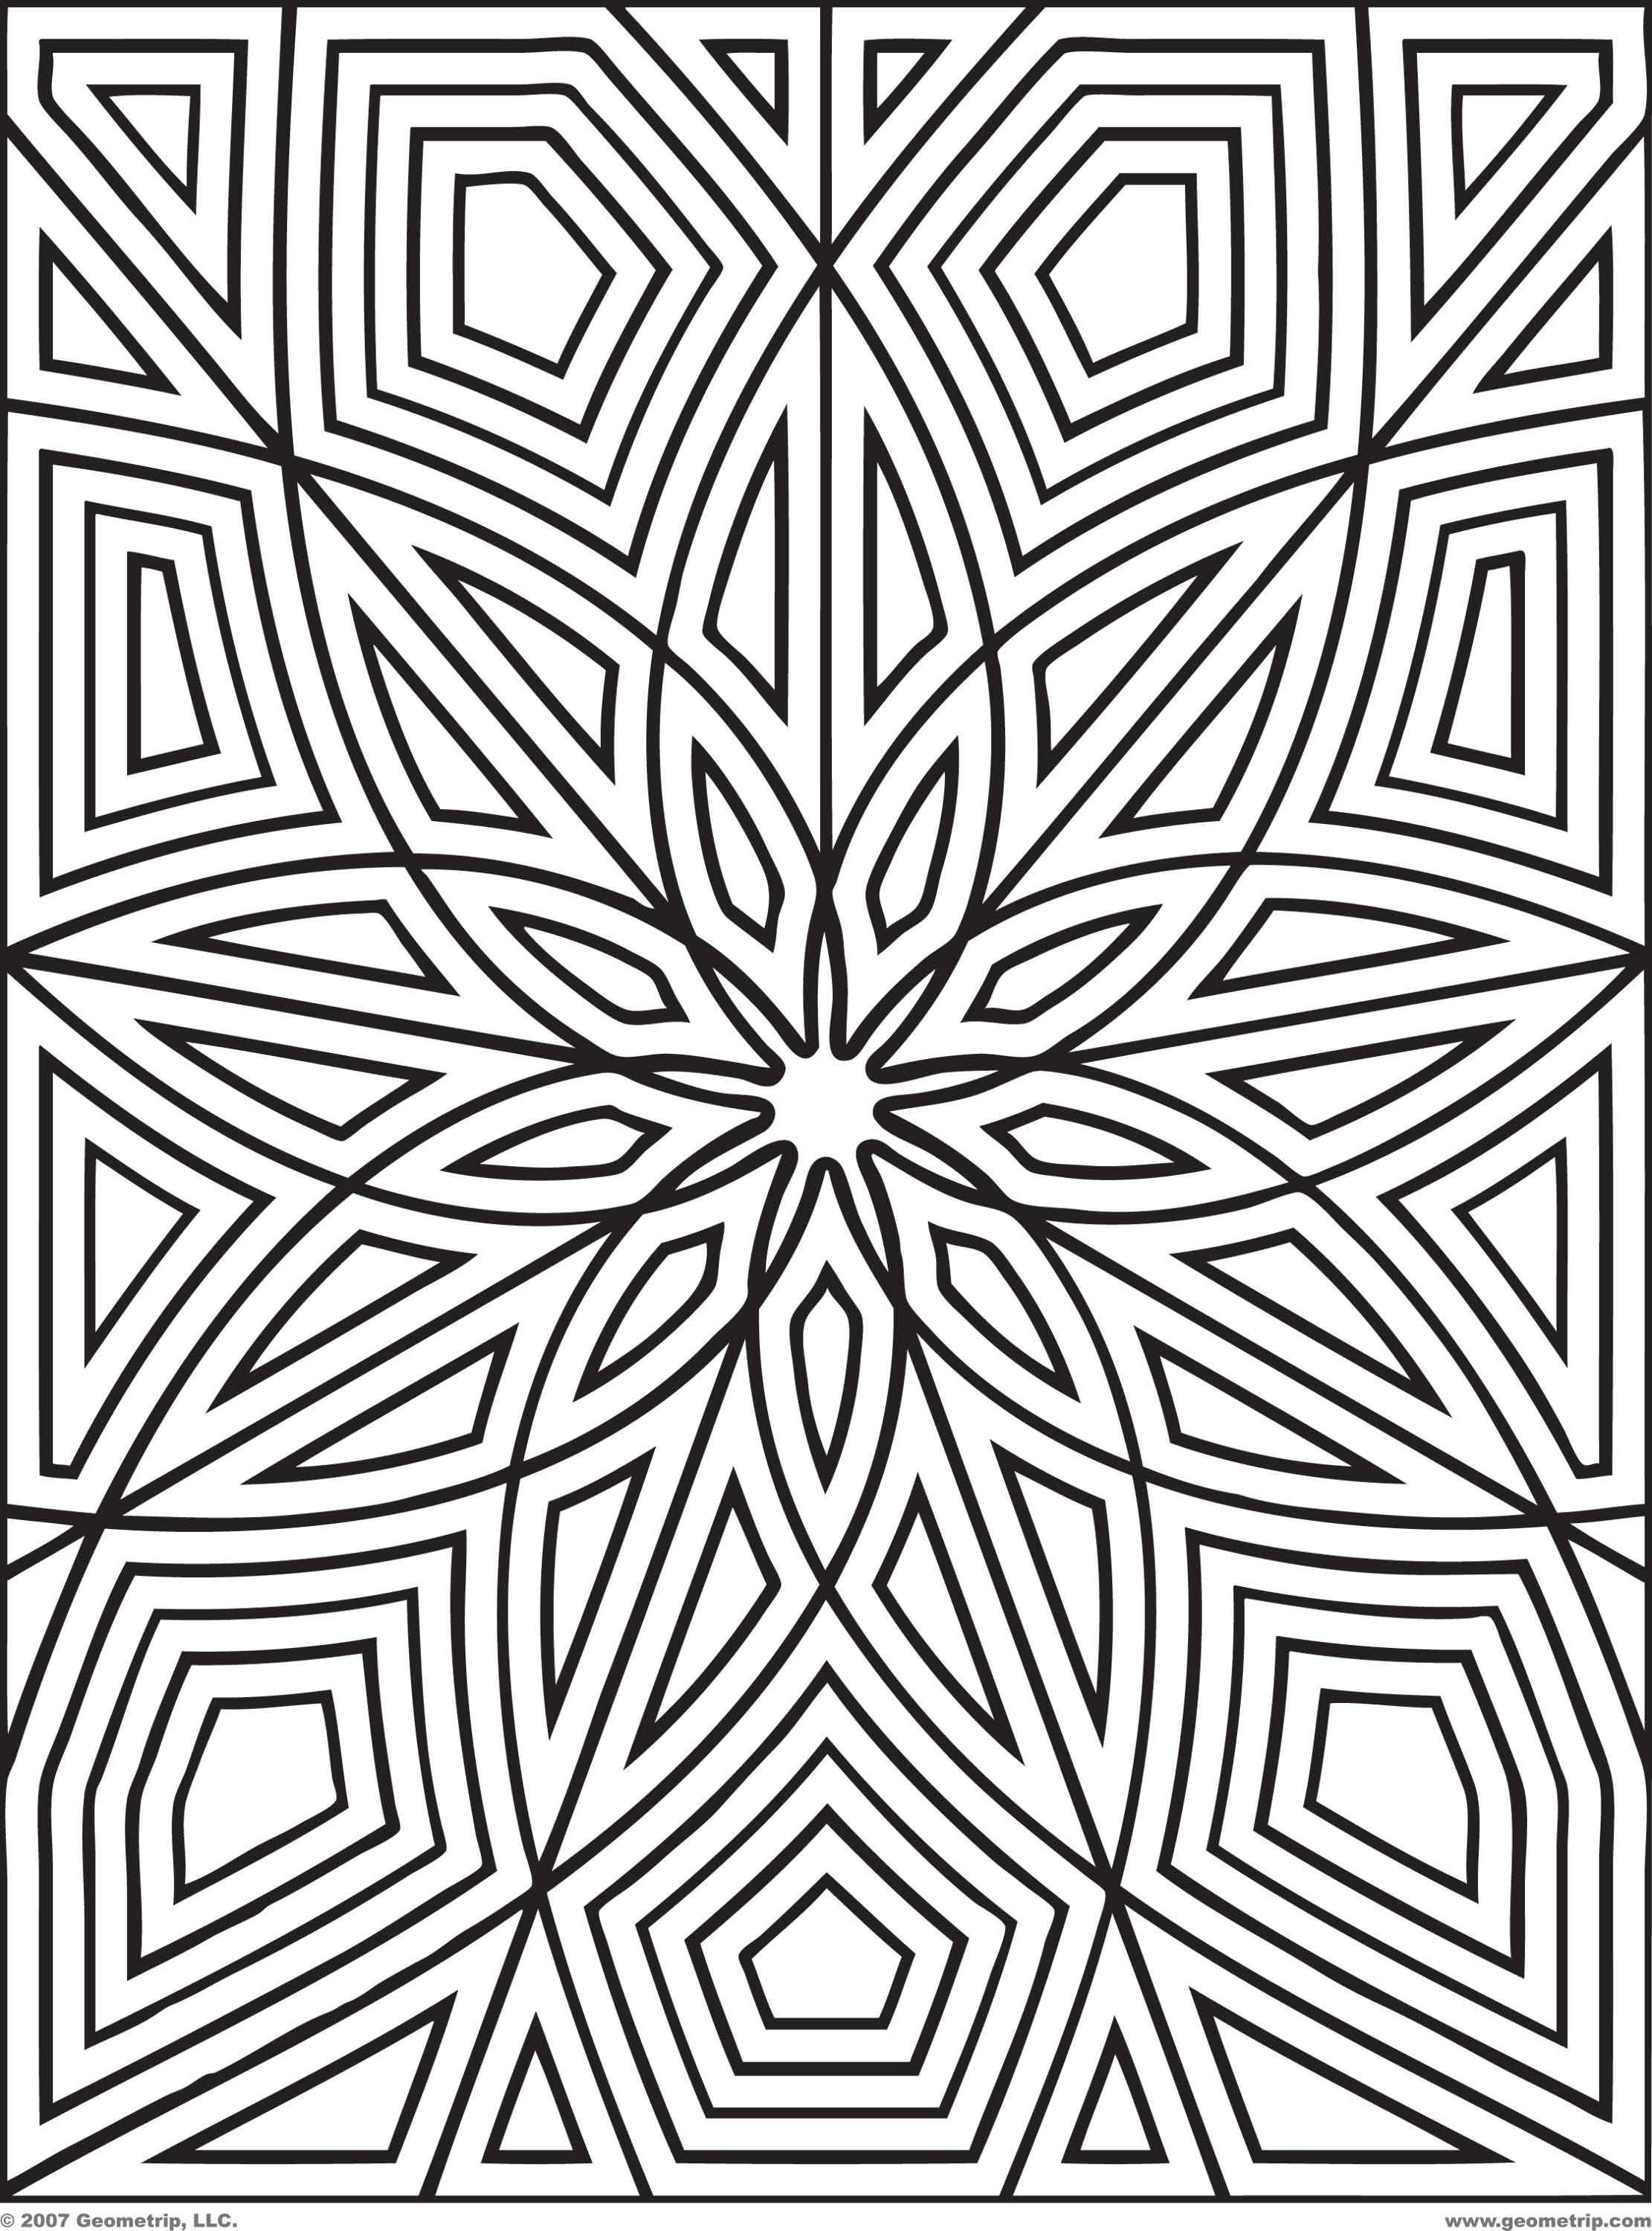 Geometrip Com Free Geometric Coloring Designs Rectangles Geometric Coloring Pages Mandala Coloring Pages Pattern Coloring Pages